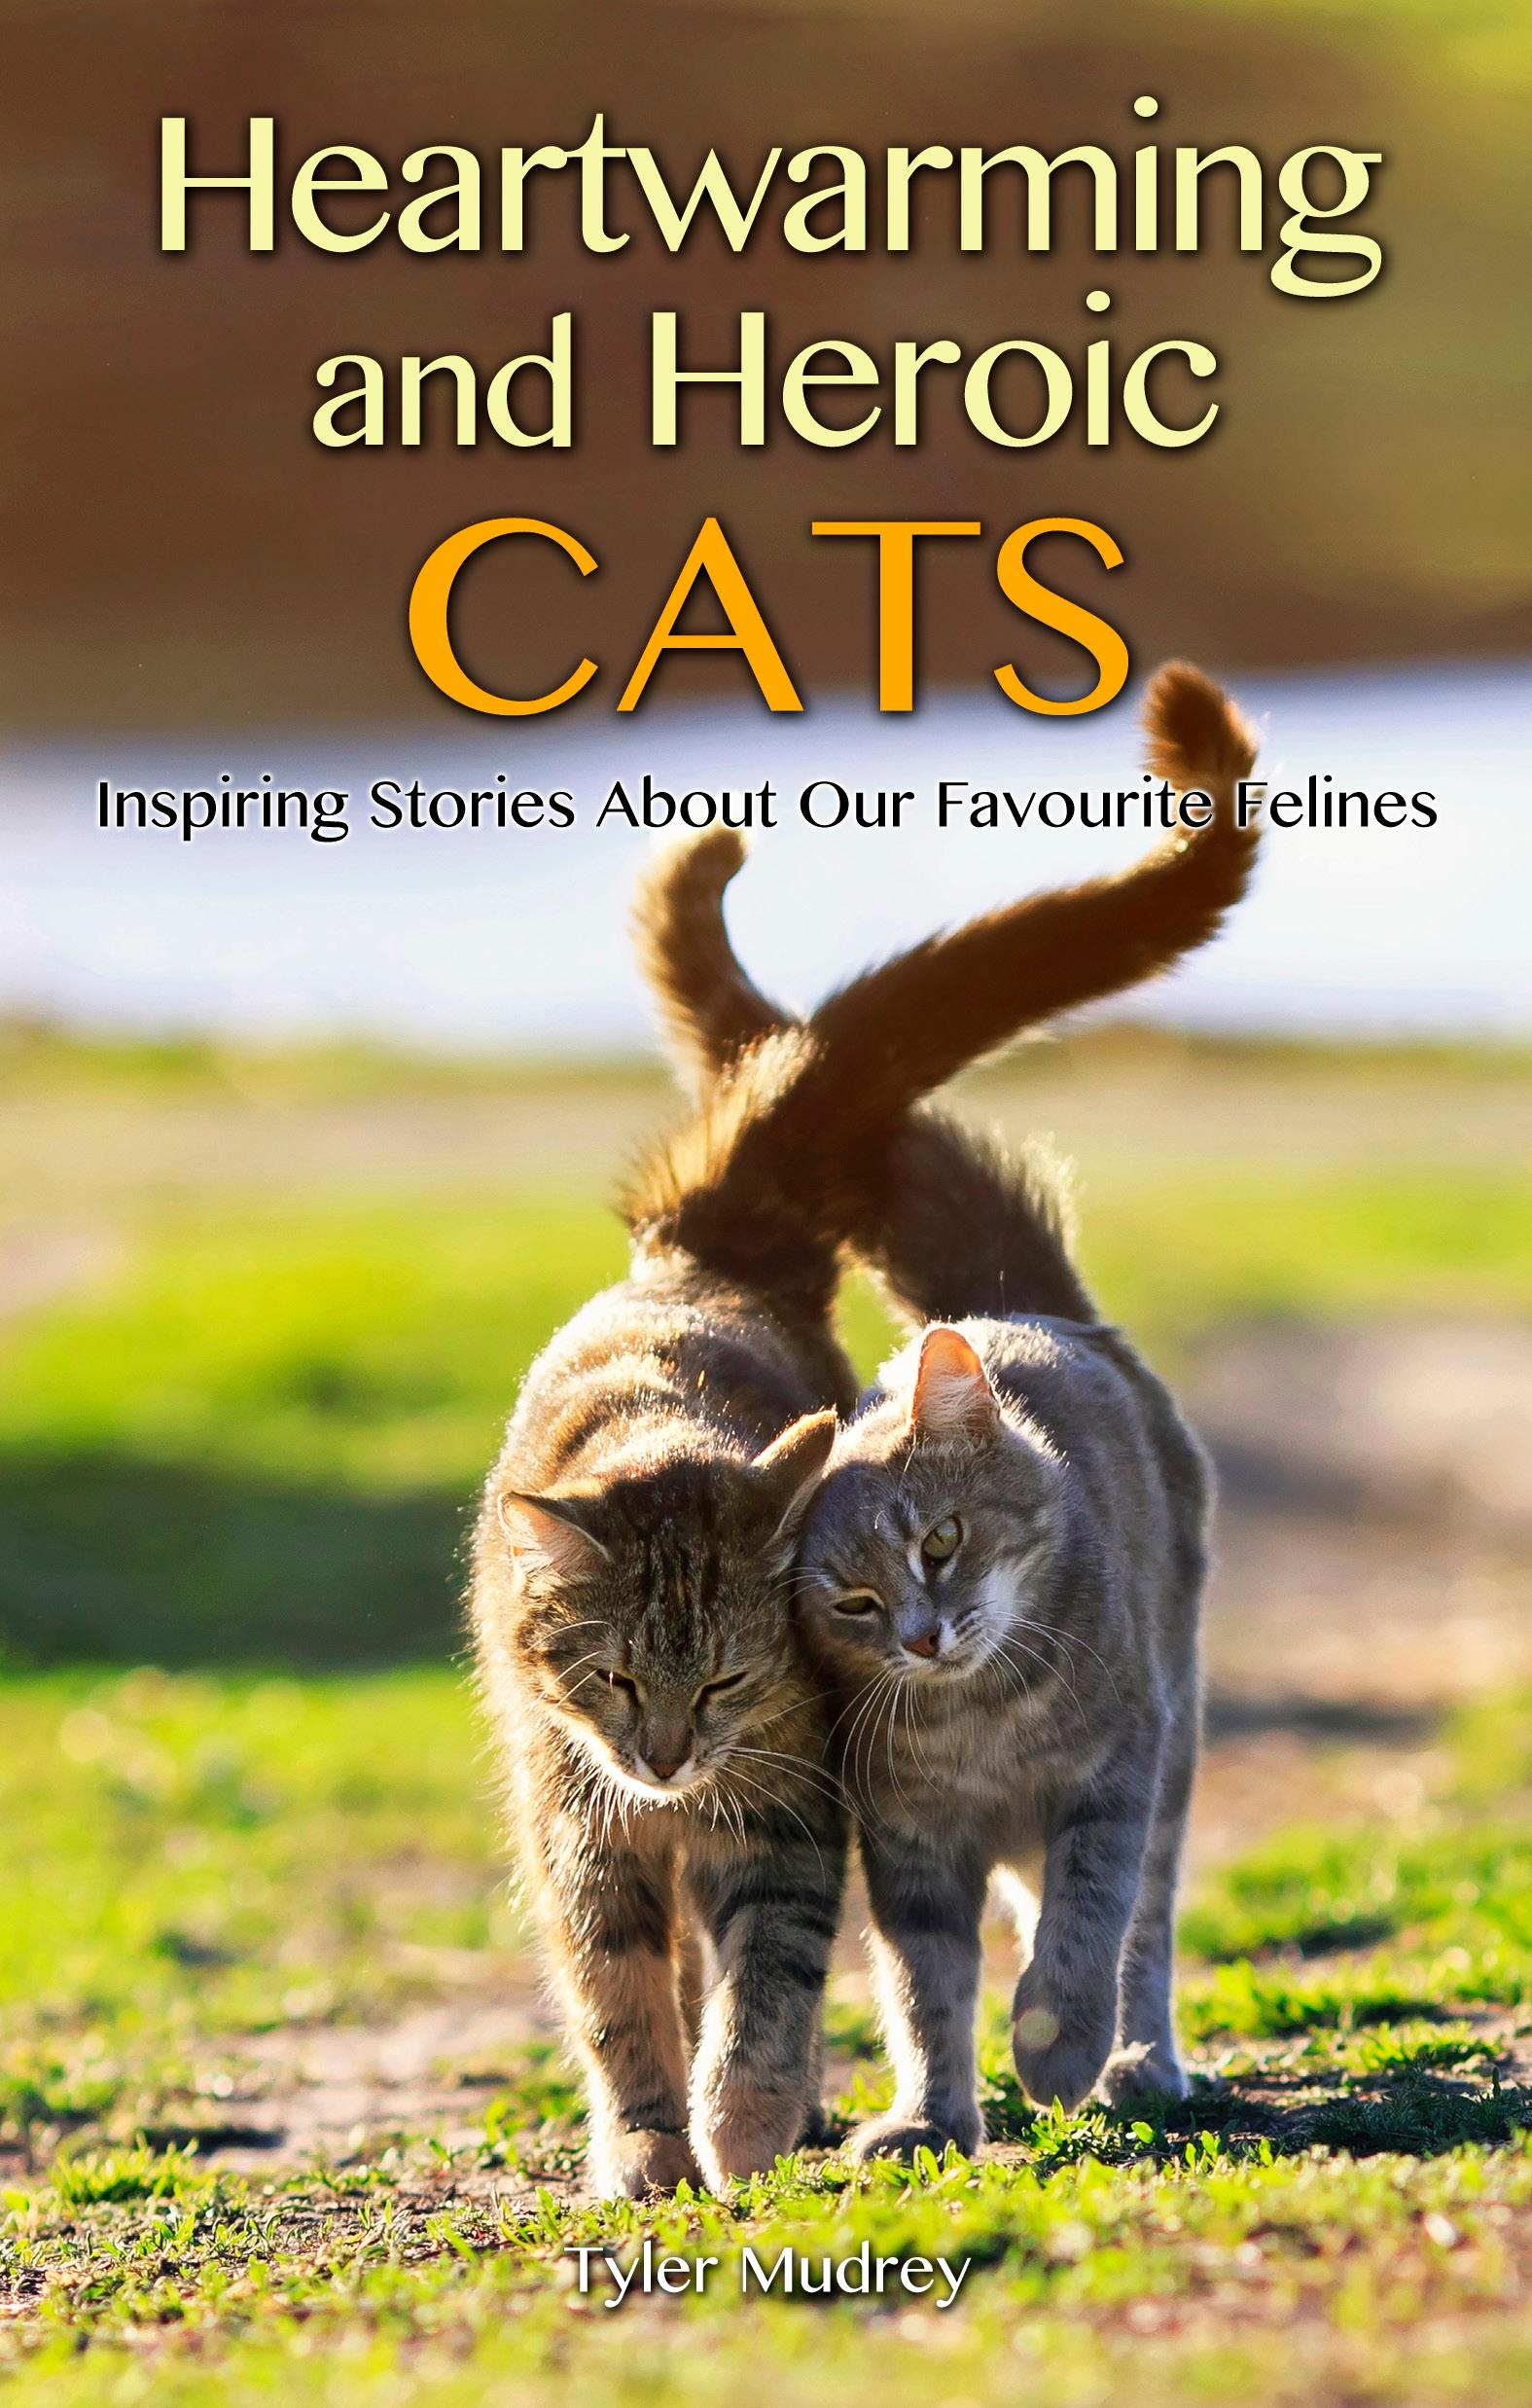 Heartwarming and Heroic Cats